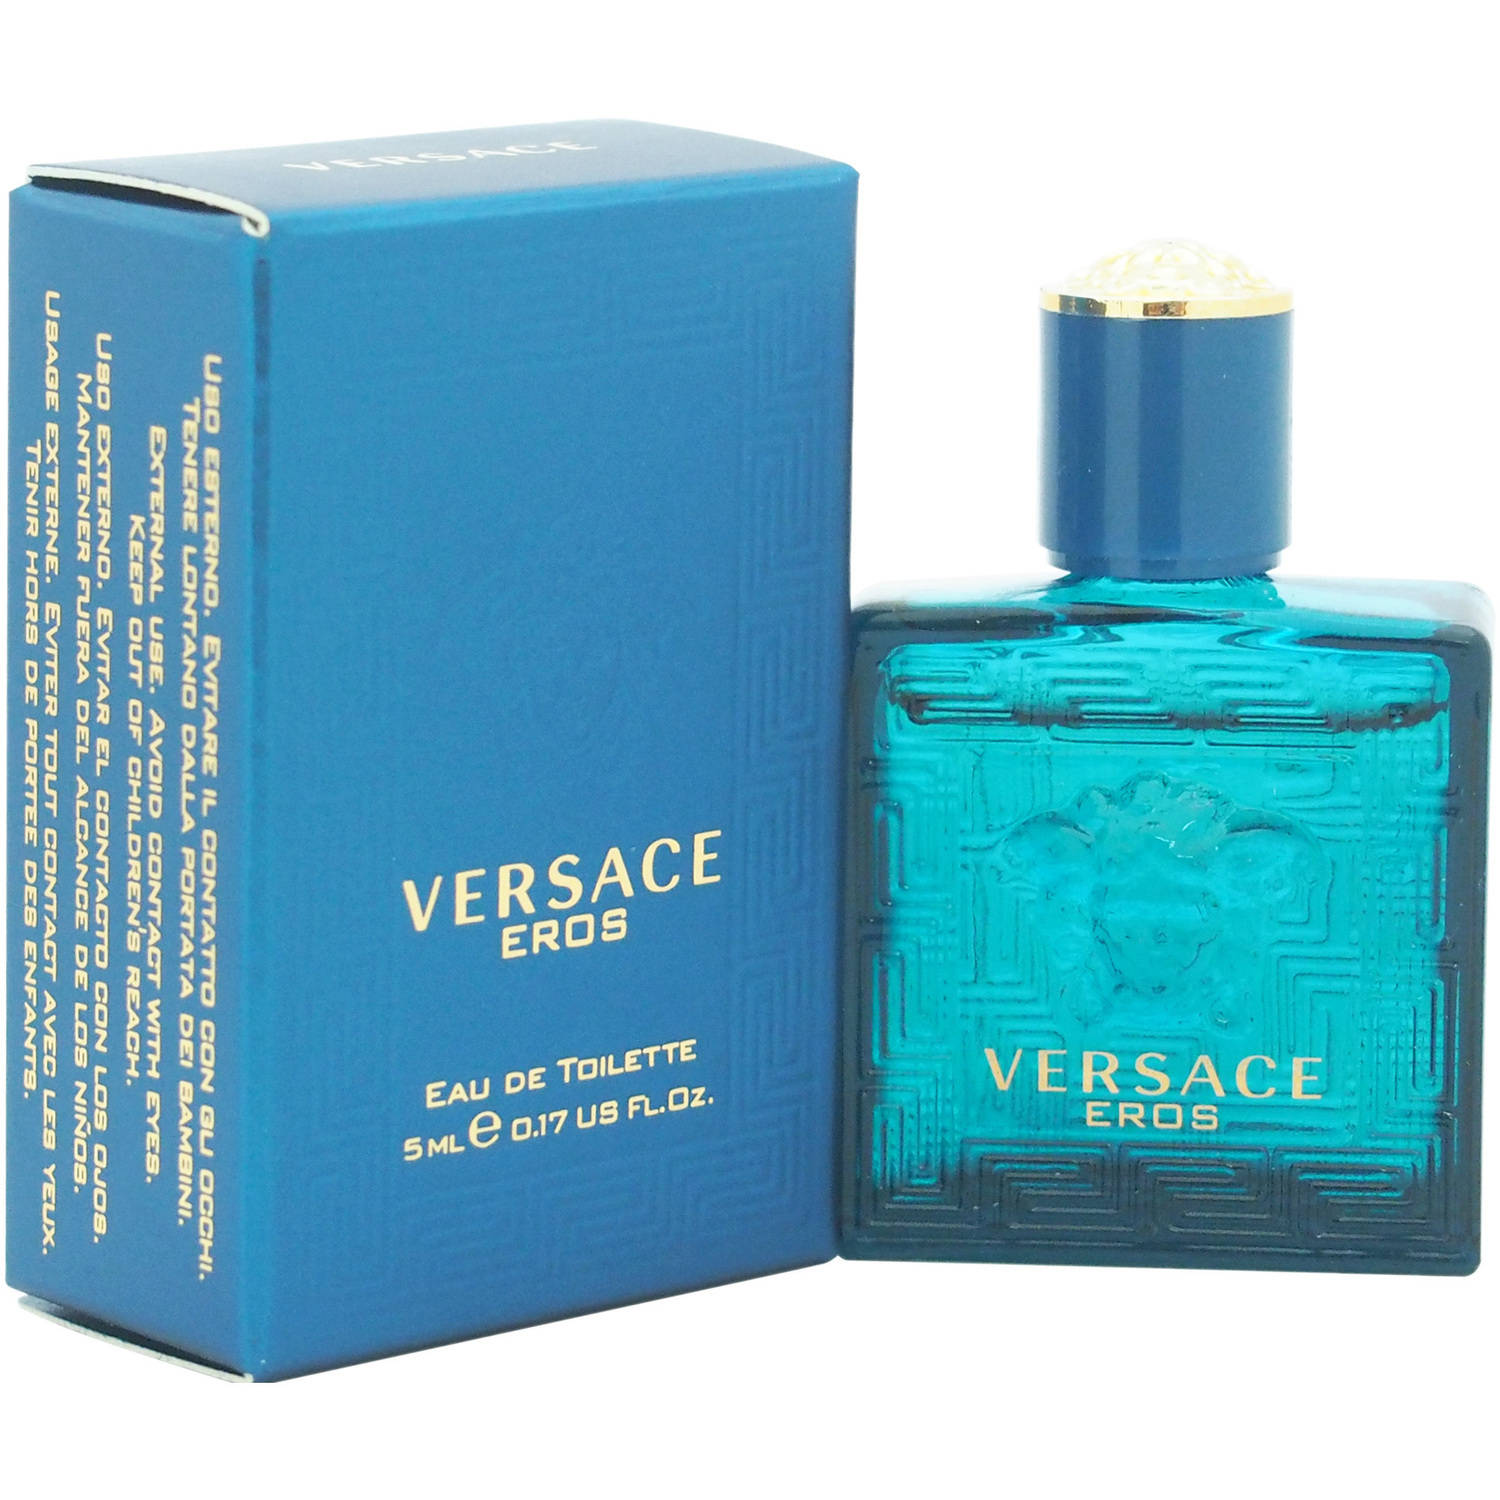 Versace Eros by Versace for Men, 0.17 oz